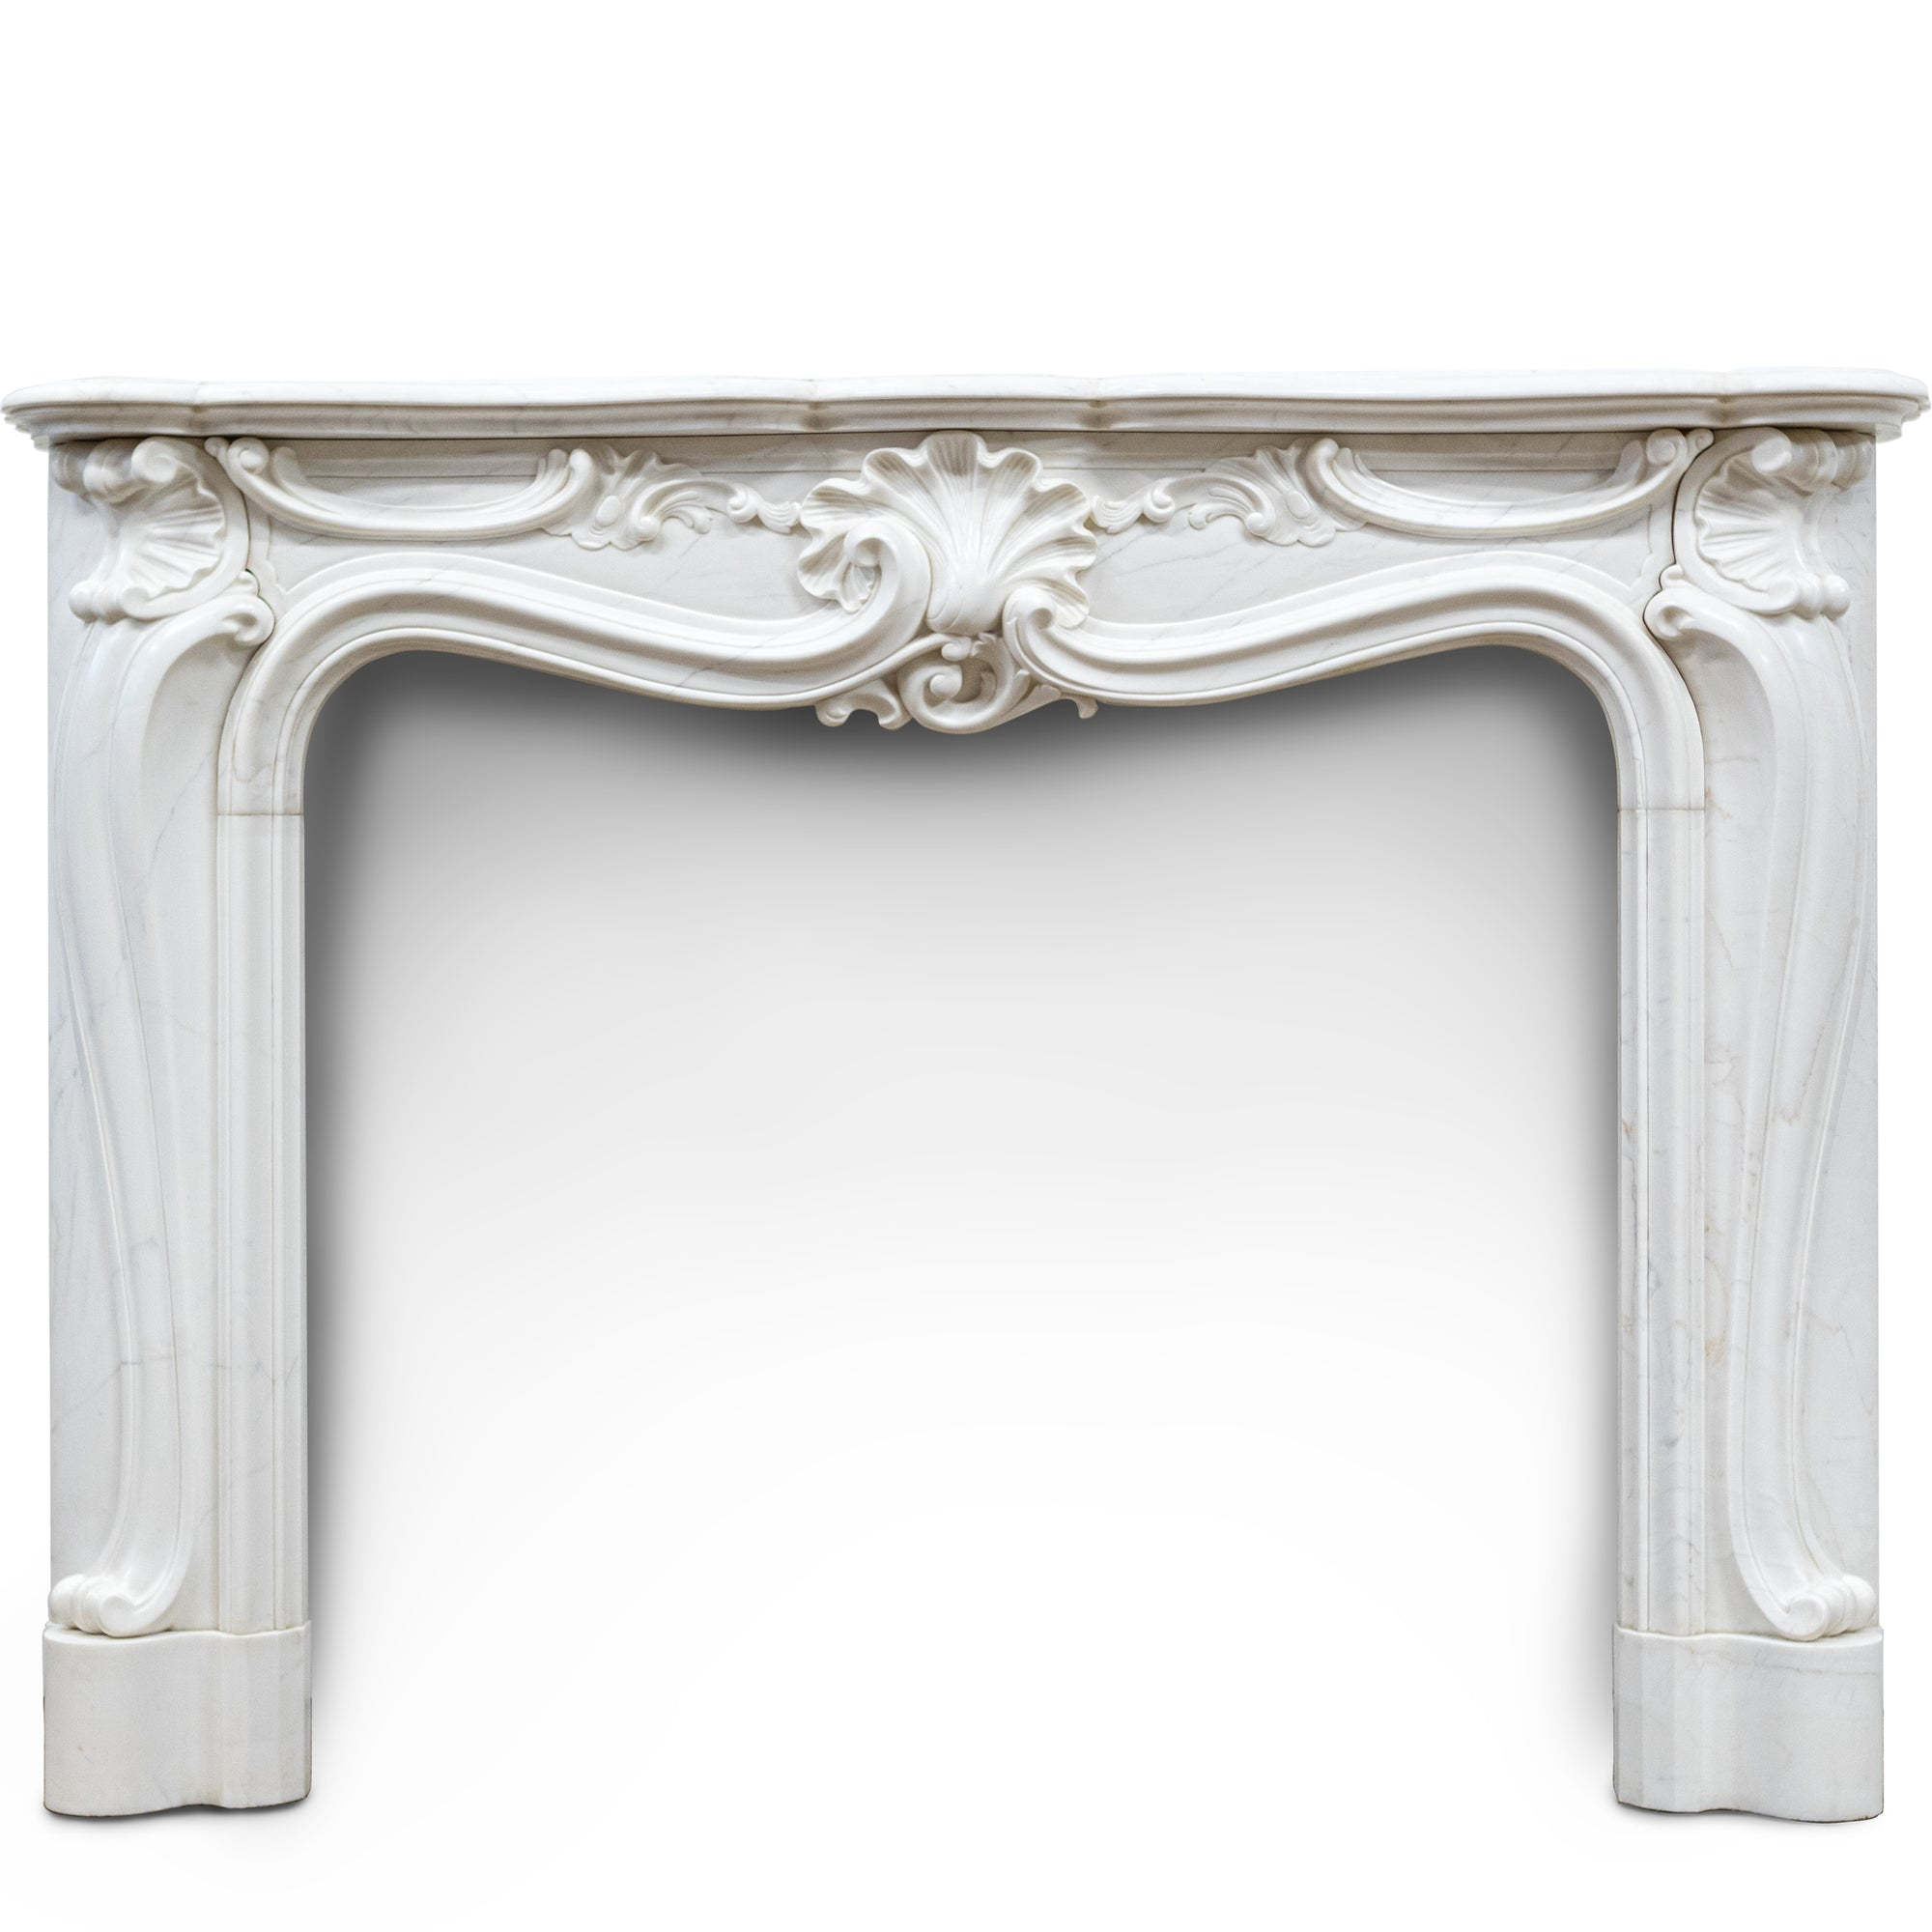 Reclaimed Regence Rococo Style Marble Fireplace Surround | The Architectural Forum